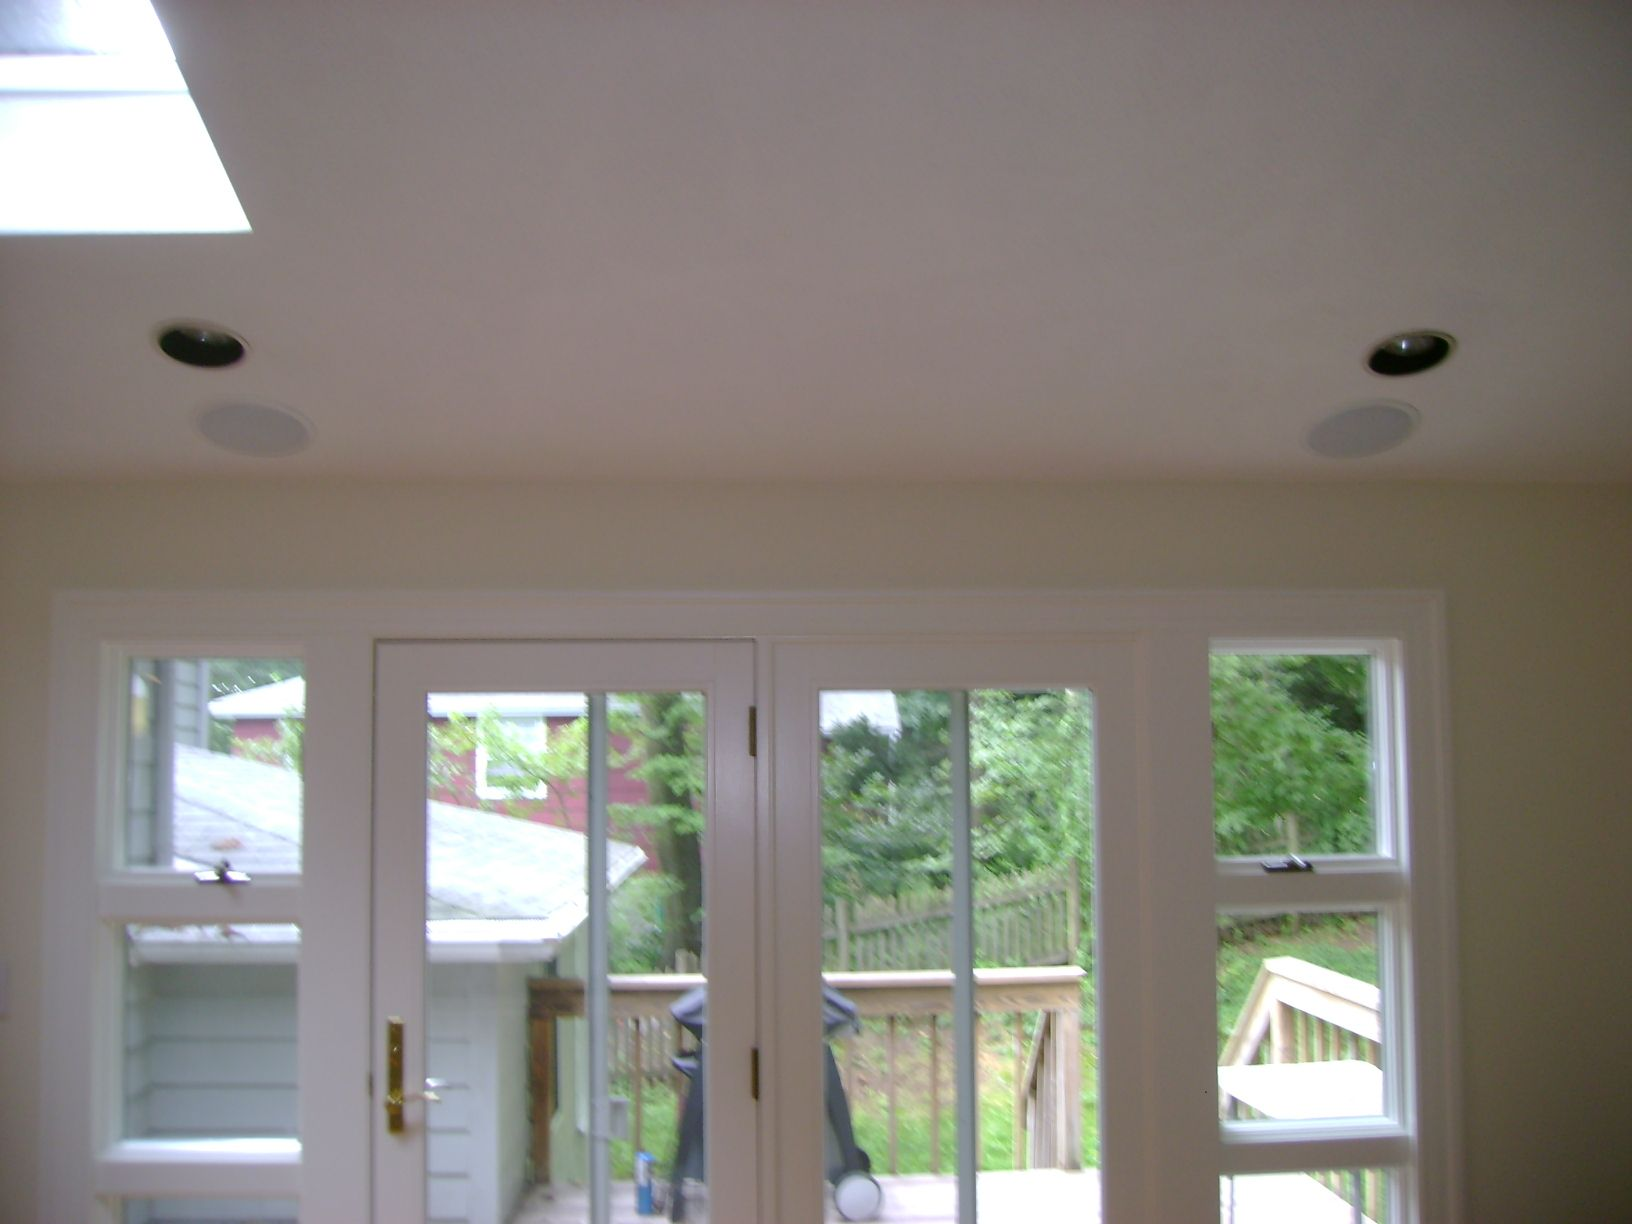 mount audio index video speaker ceiling speakers hr dayton stereo architectural home